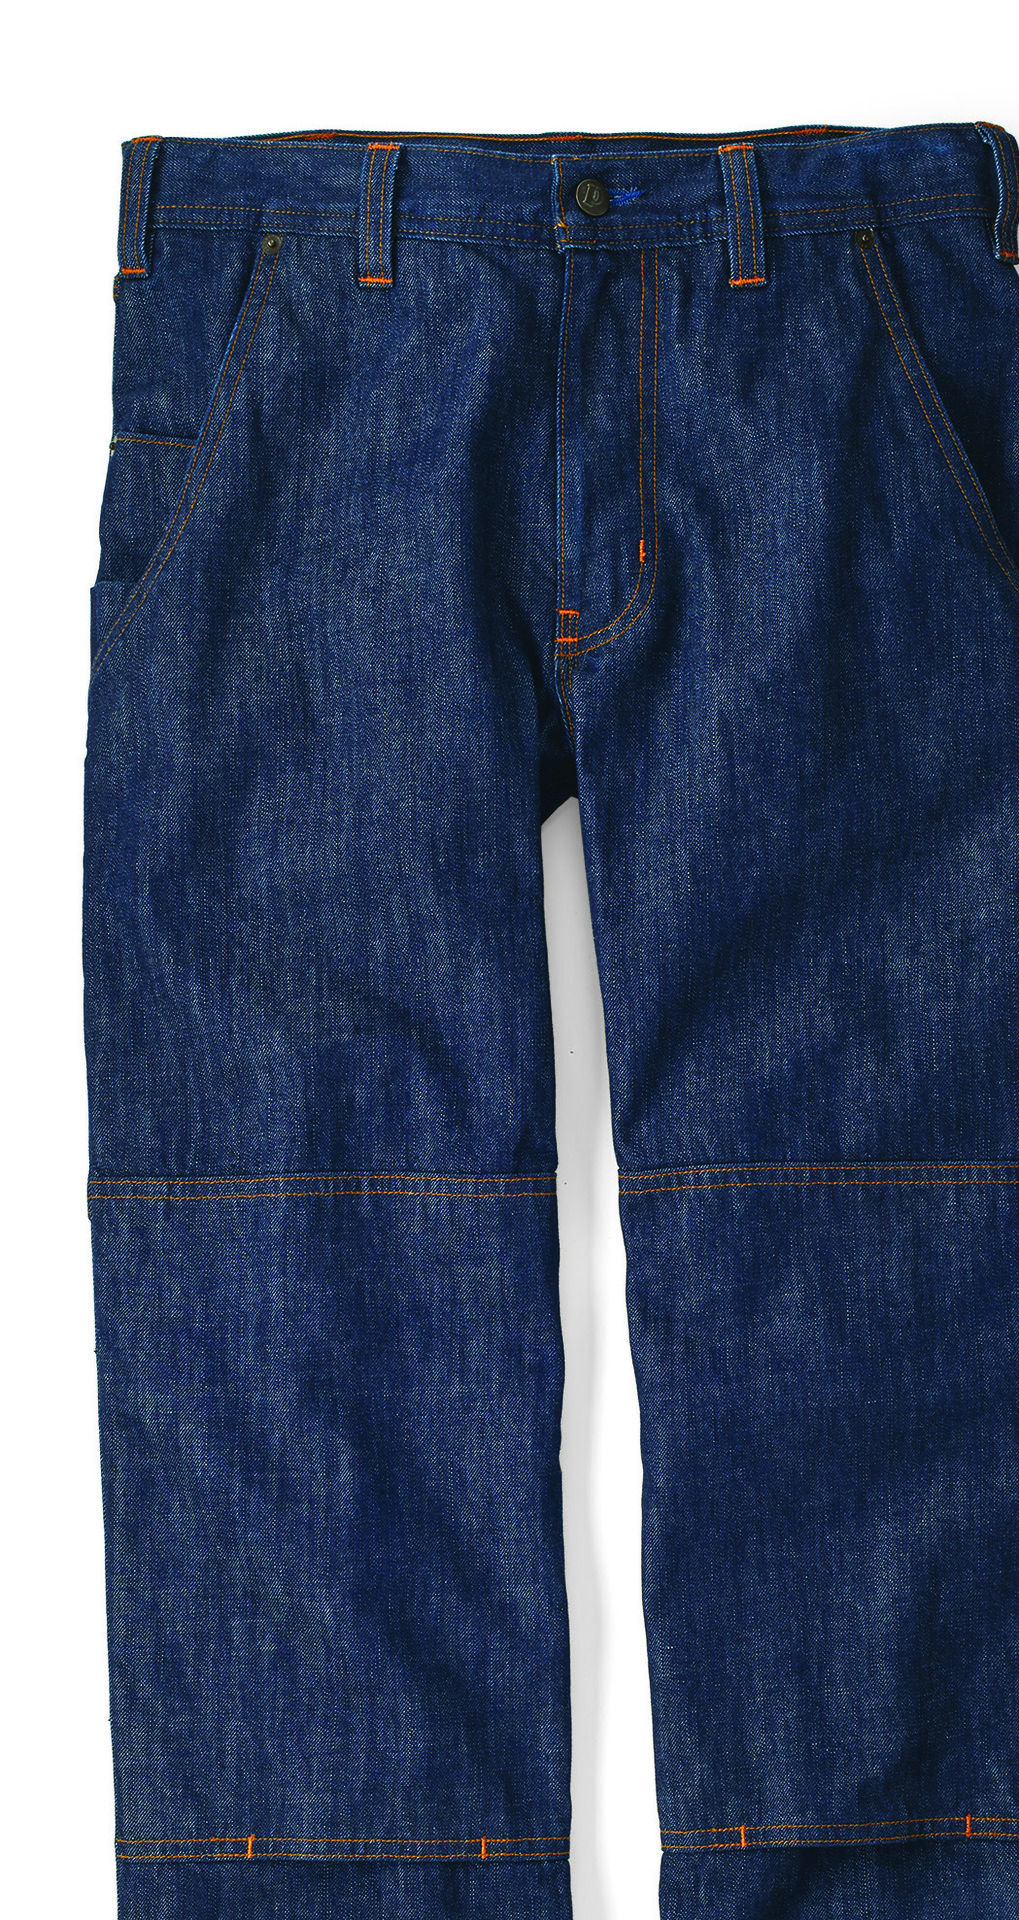 4d5c499fe2a4c Men's Steel Forge Denim Pants: $159.00 | 56120 I 28-44/even + 31, 33 |  Relaxed fit | 907 g (32 oz)available in short, regular and long